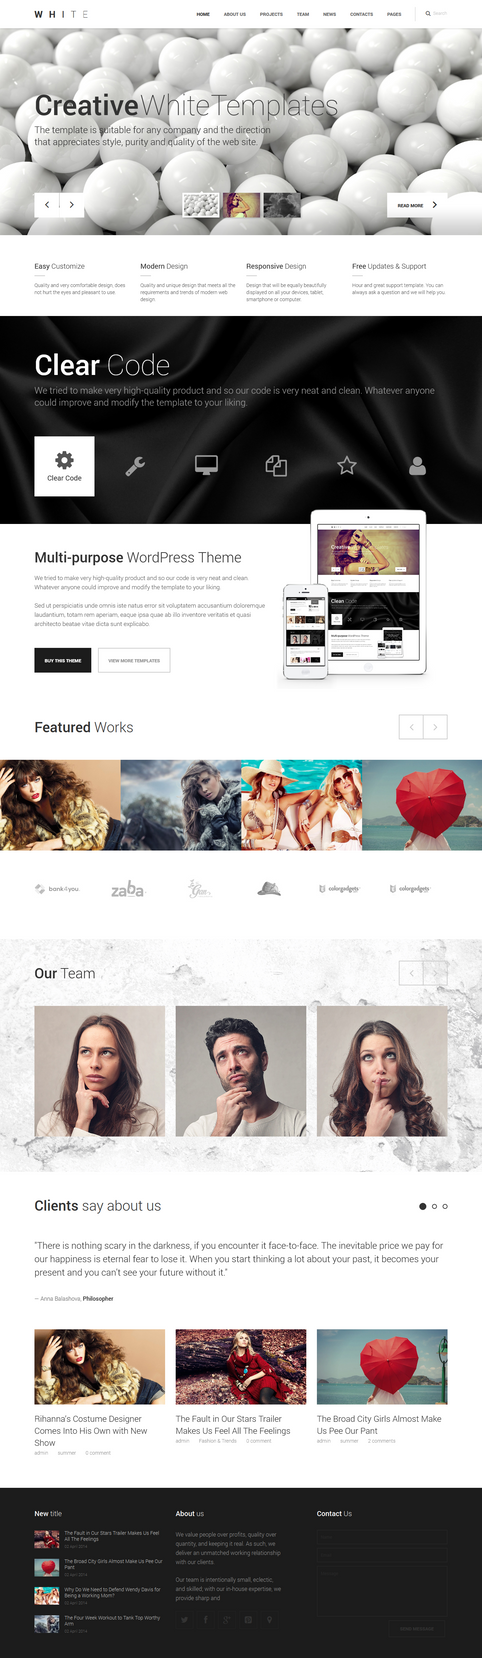 WHITE - Creative Theme by webdesigngeek